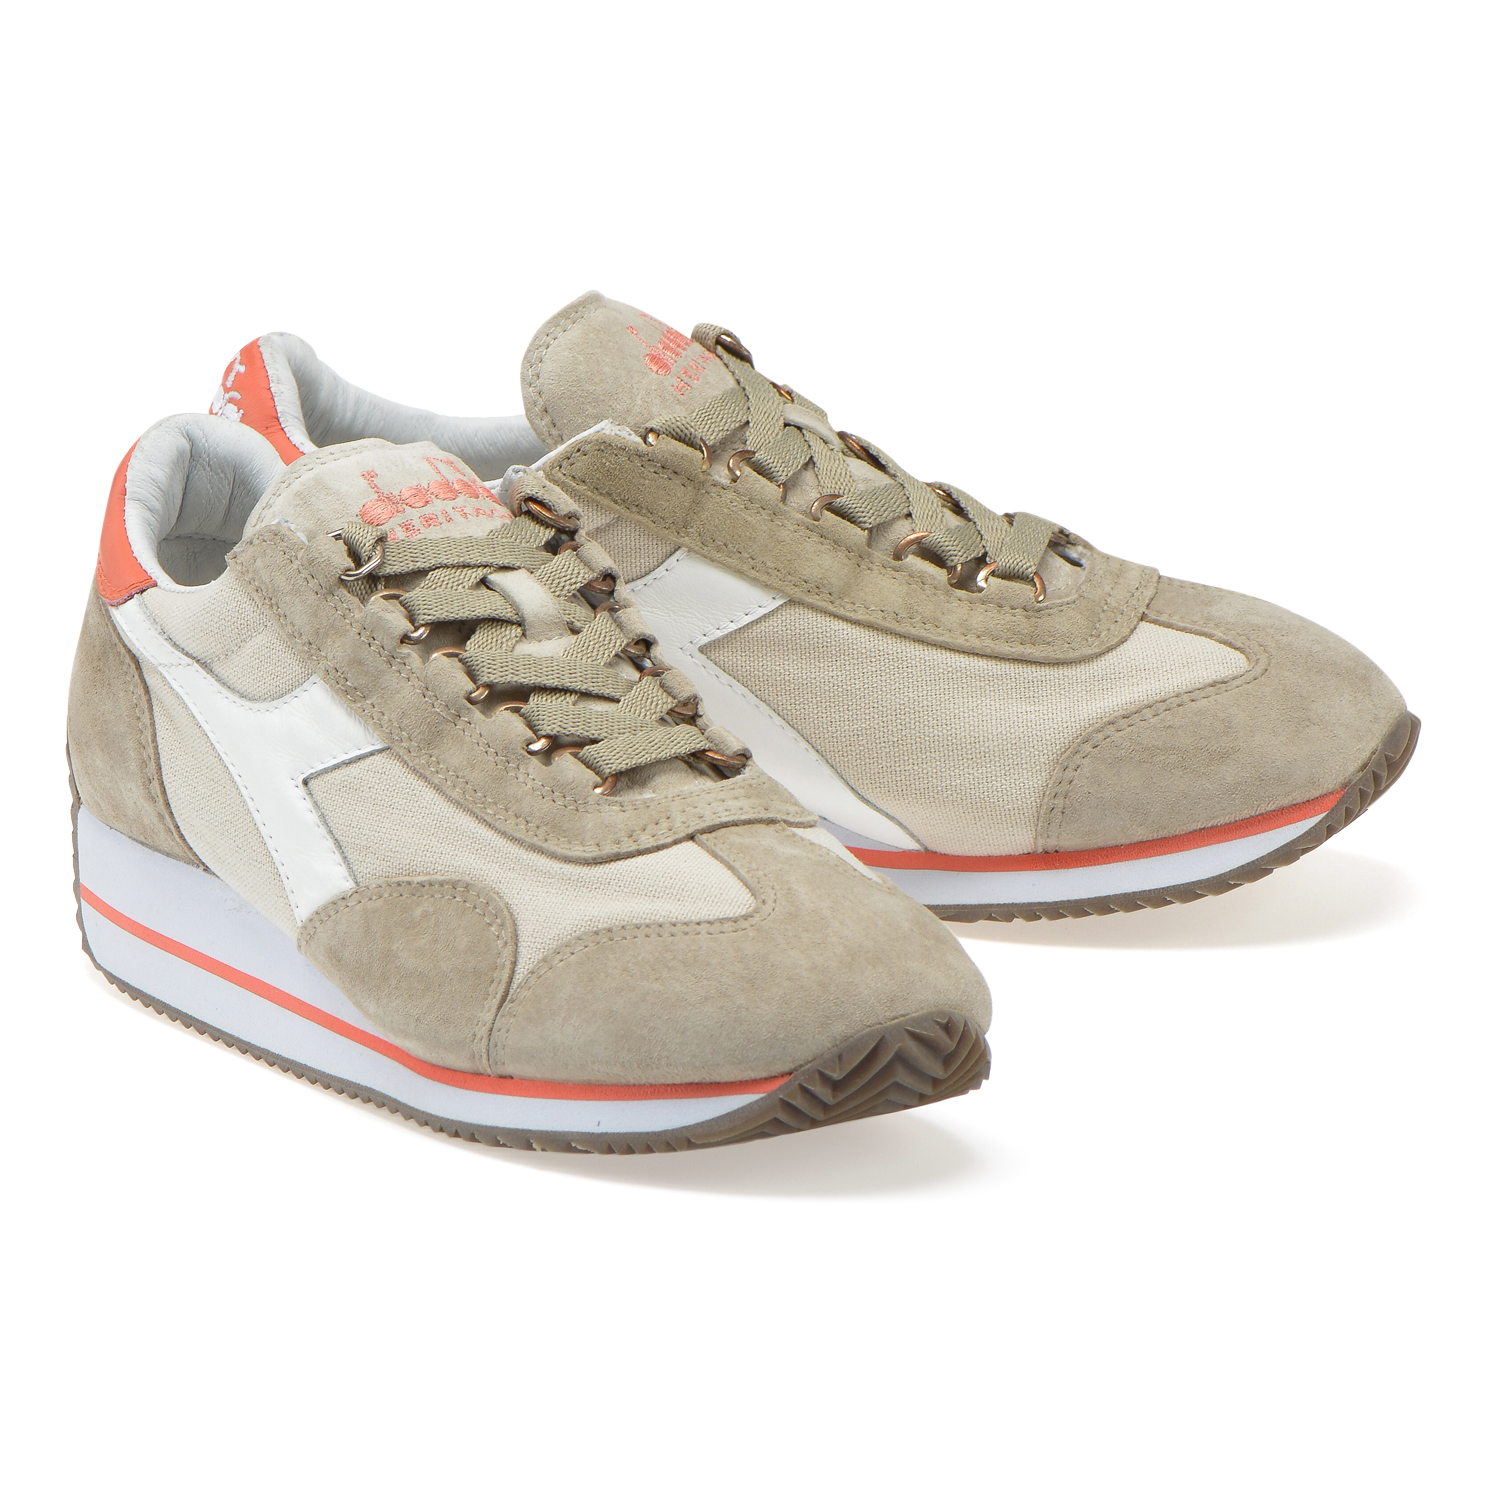 Details about Diadora Heritage Sneakers EQUIPE W SW HH for woman